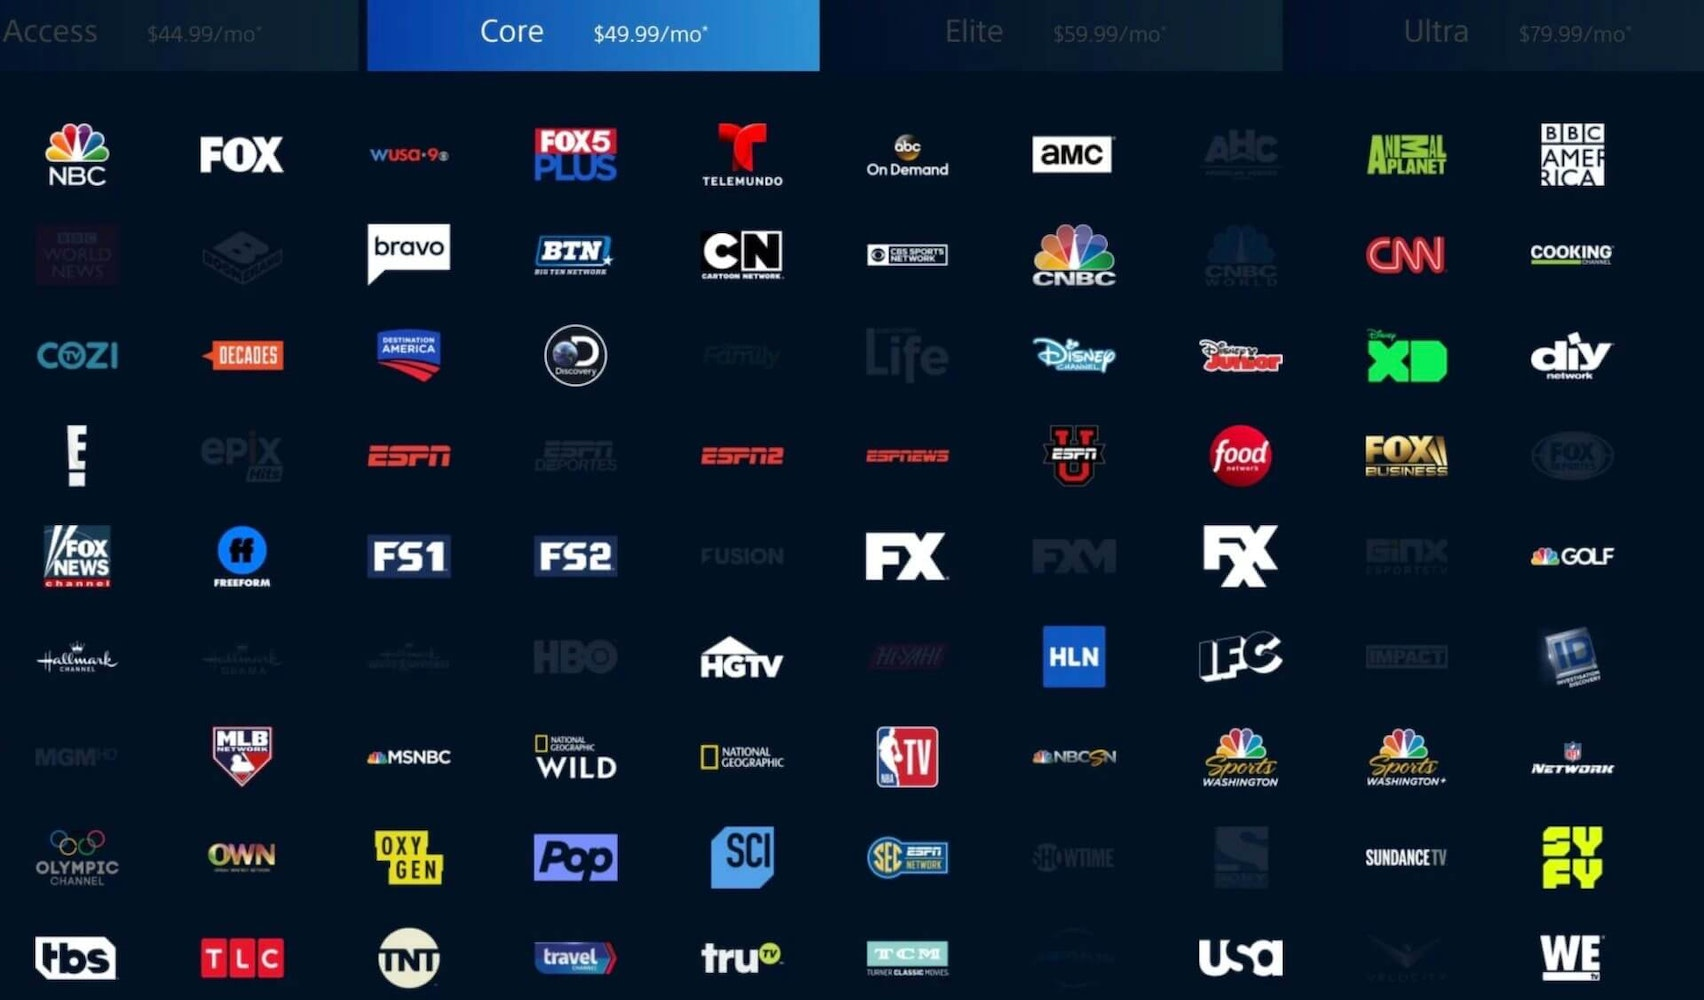 2019 nfl chiefs vs 49ers football live stream free playstation vue core